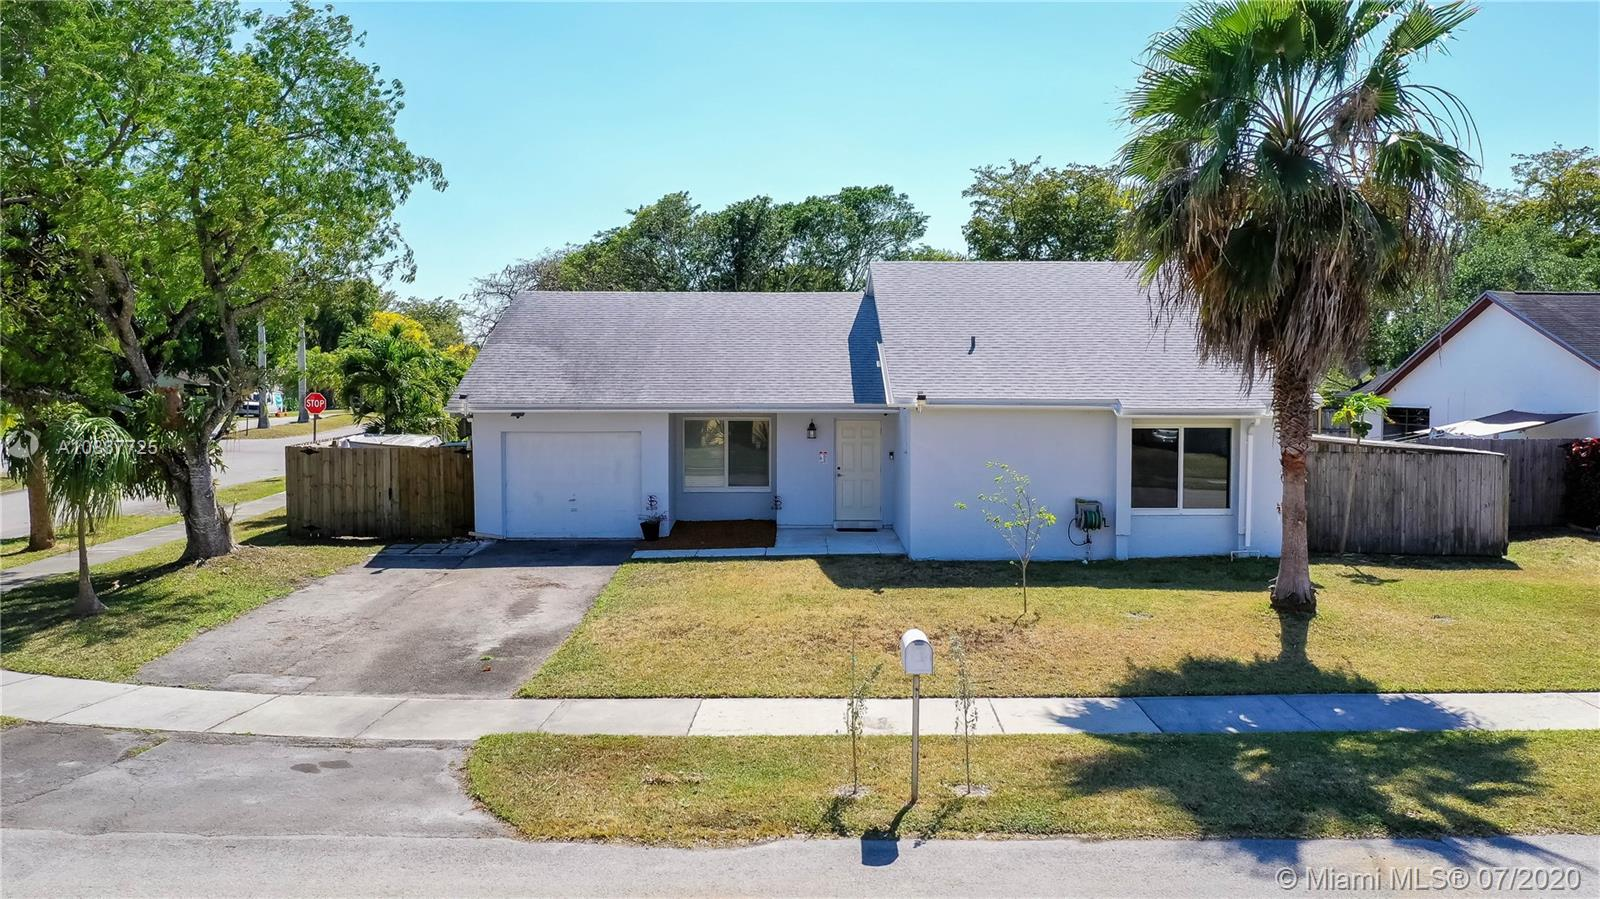 986 S Bluebird Ln Property Photo - Homestead, FL real estate listing